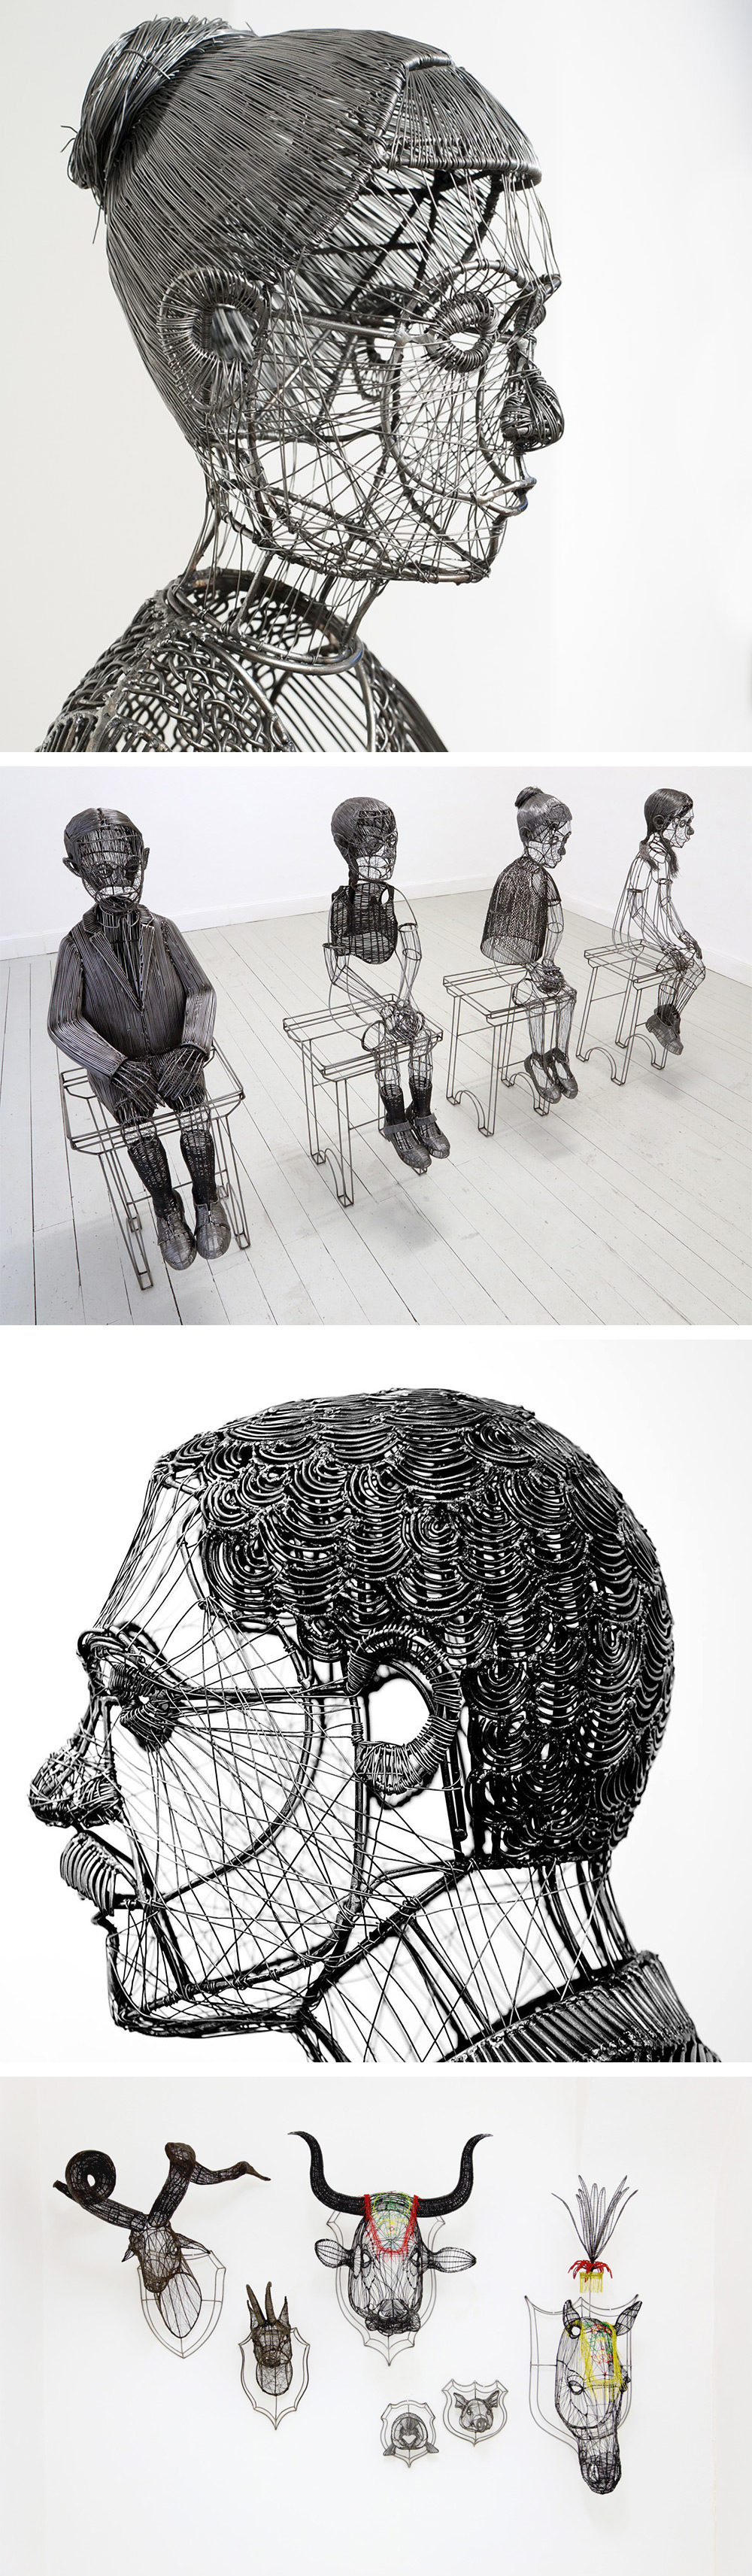 The Sculpted Wire Figures of Roberto Fanari | Sculpture | Pinterest ...